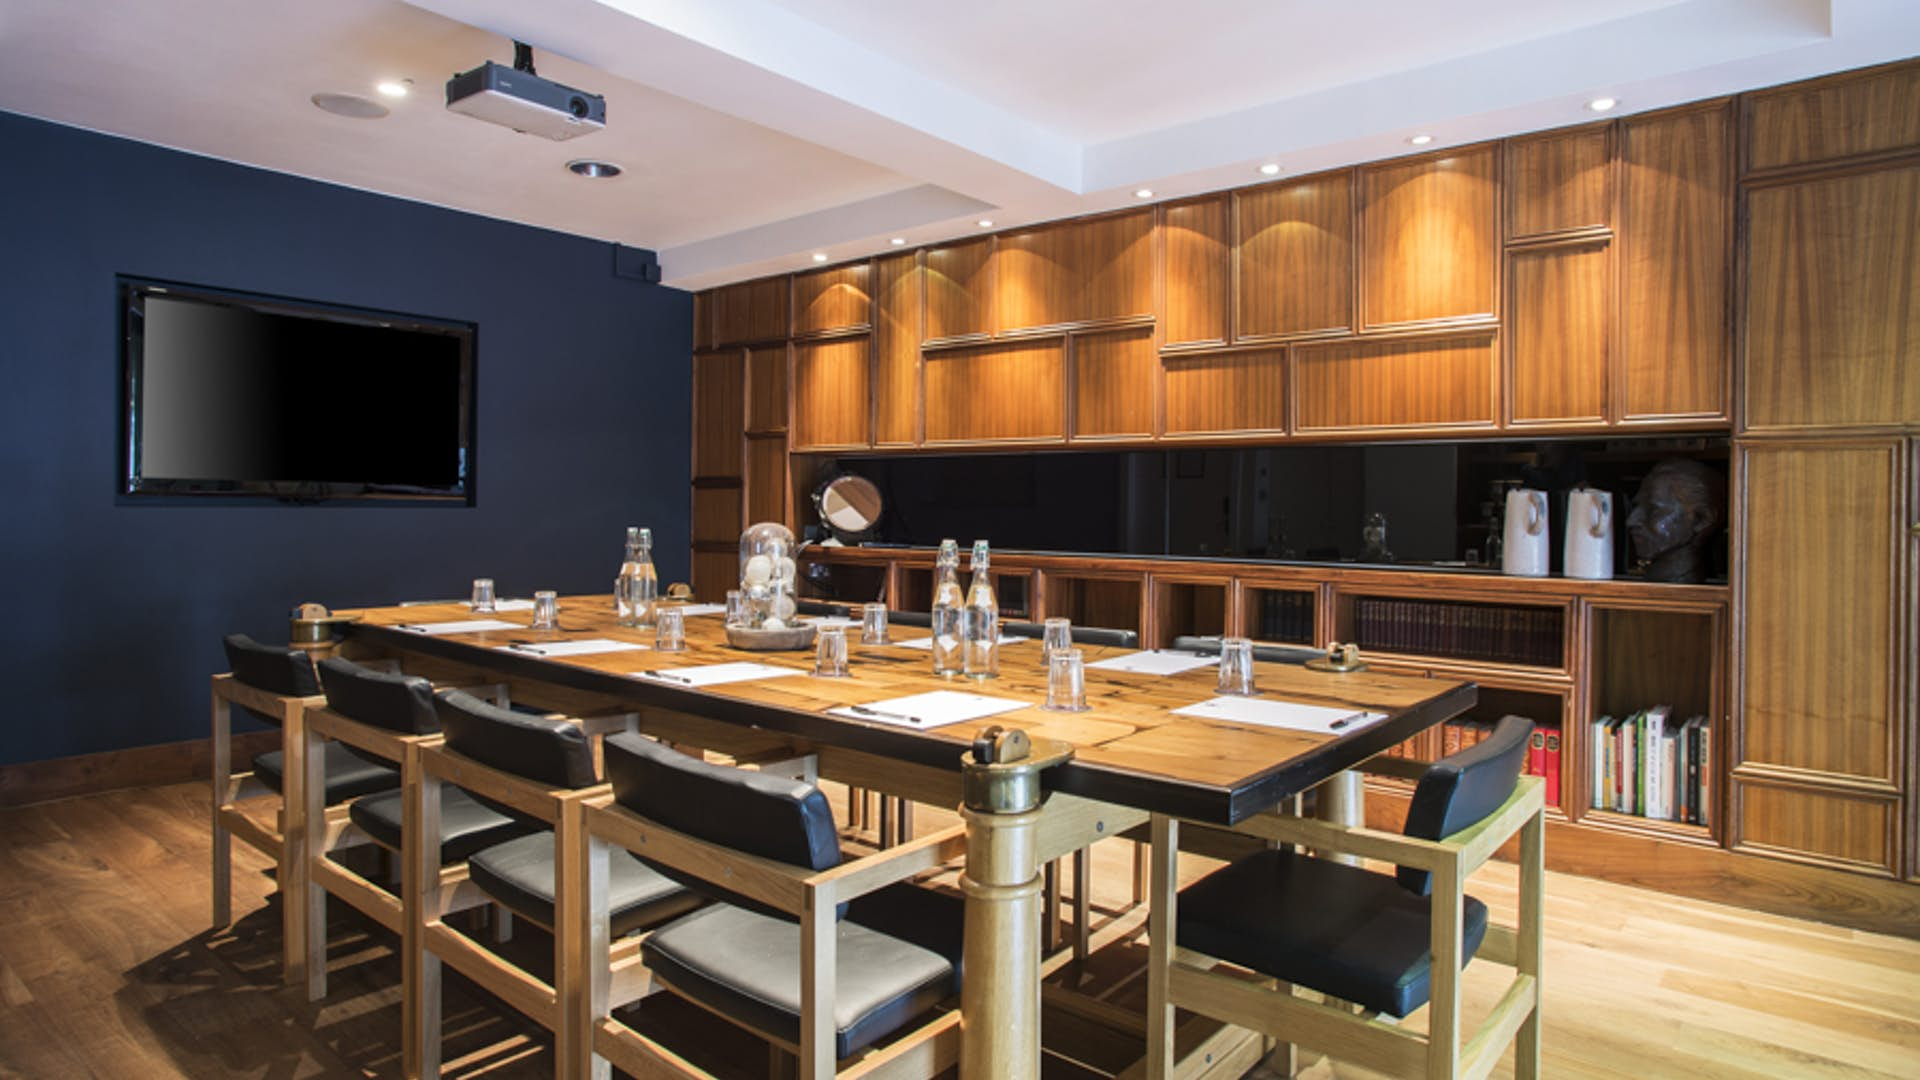 Meeting Rooms For Hire In King Cross